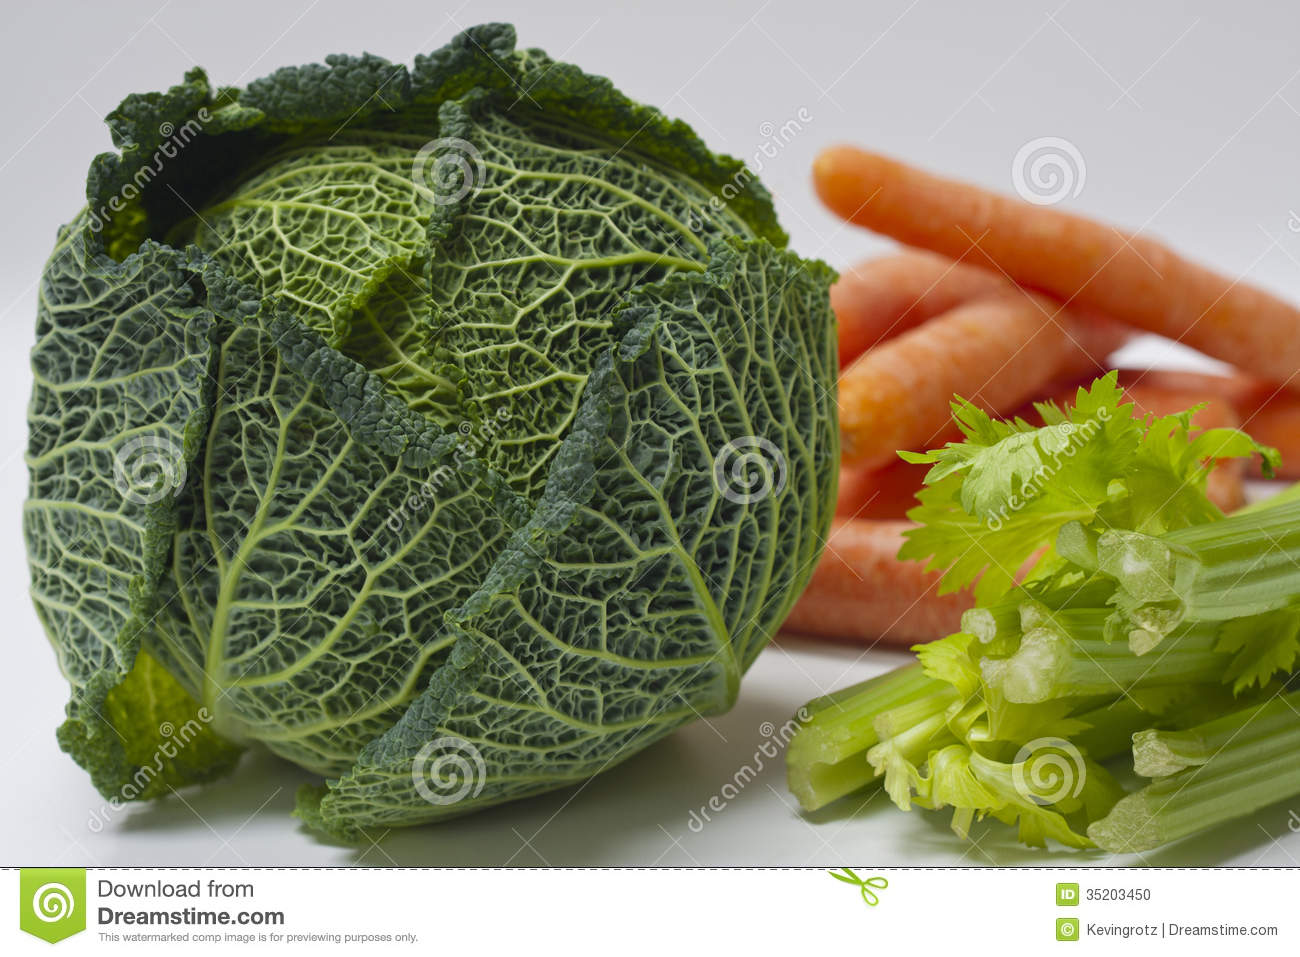 how to cook celery and carrots